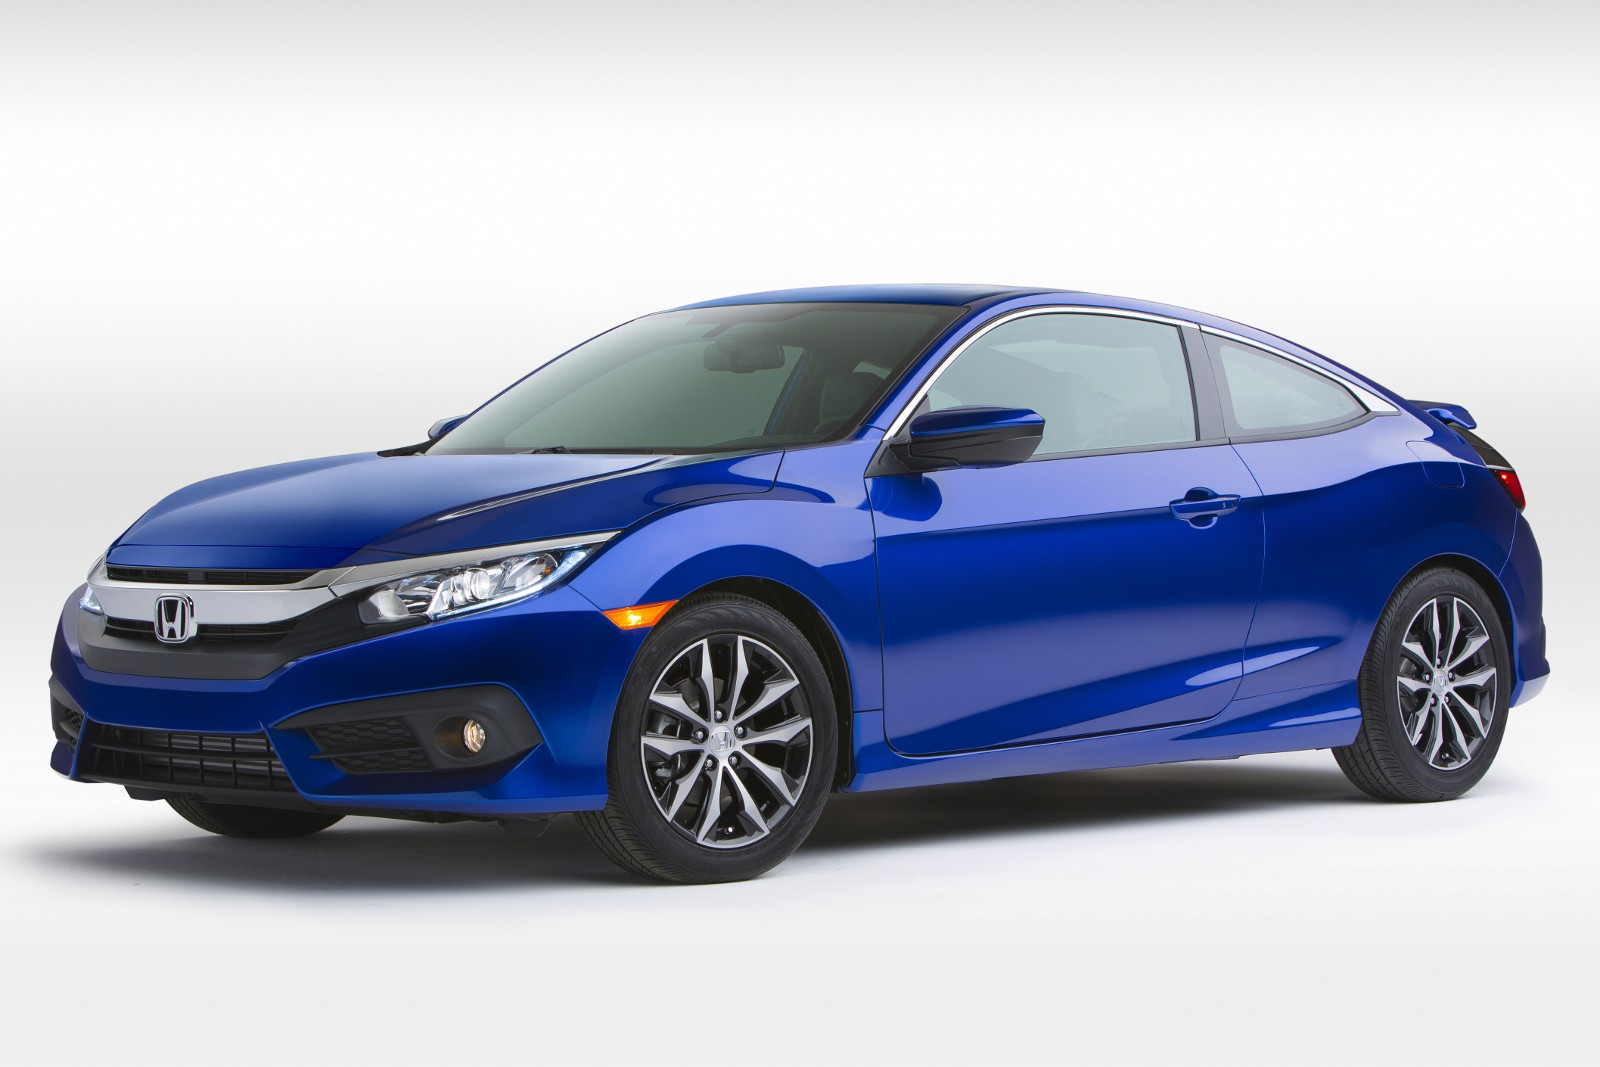 2016 honda civic coupe revealed with bigger cabin turbo for New 2016 honda civic